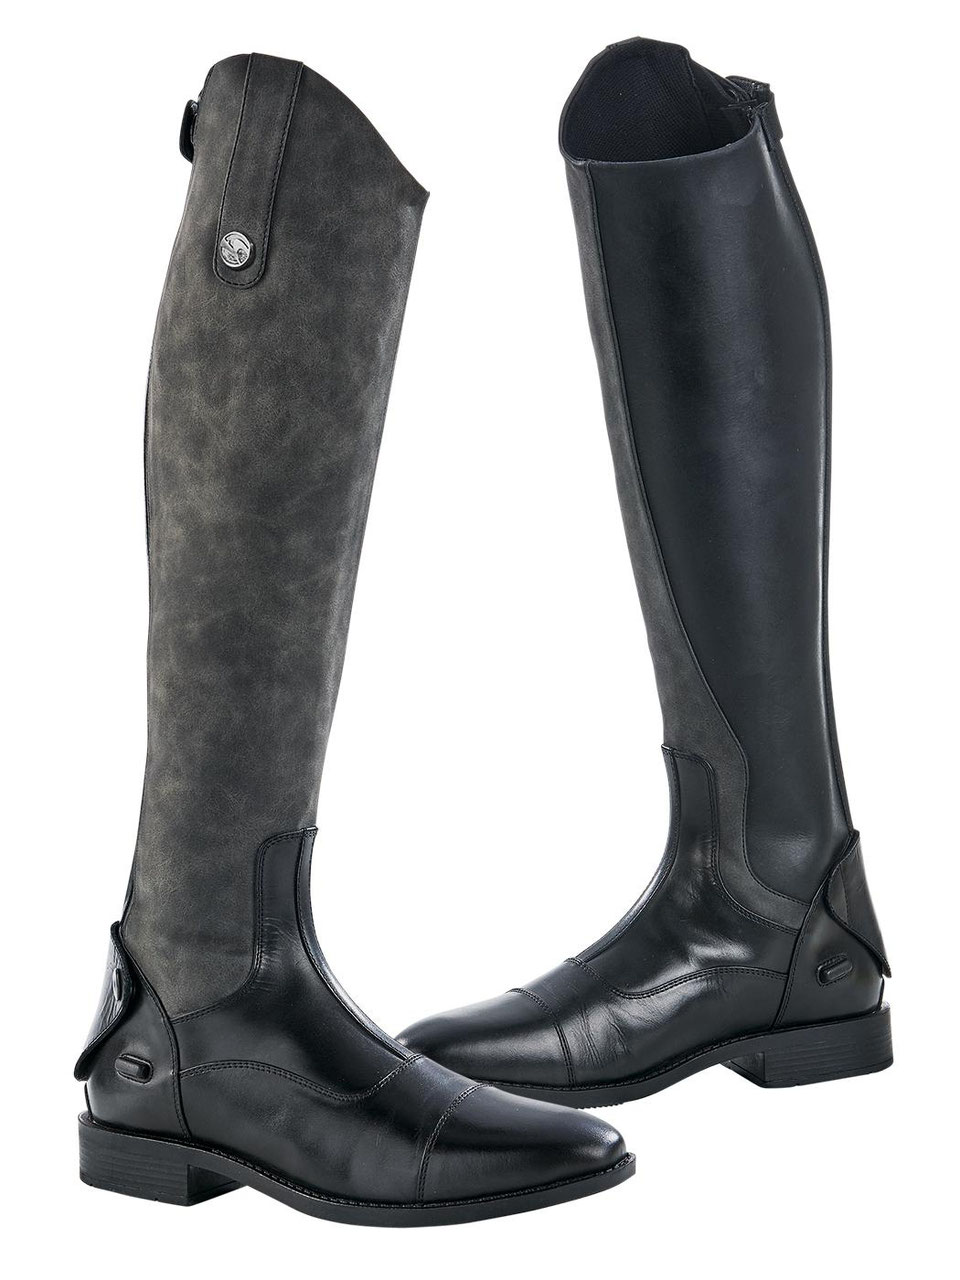 6d9e194b1fcd78 Riding Boots - World of Horses